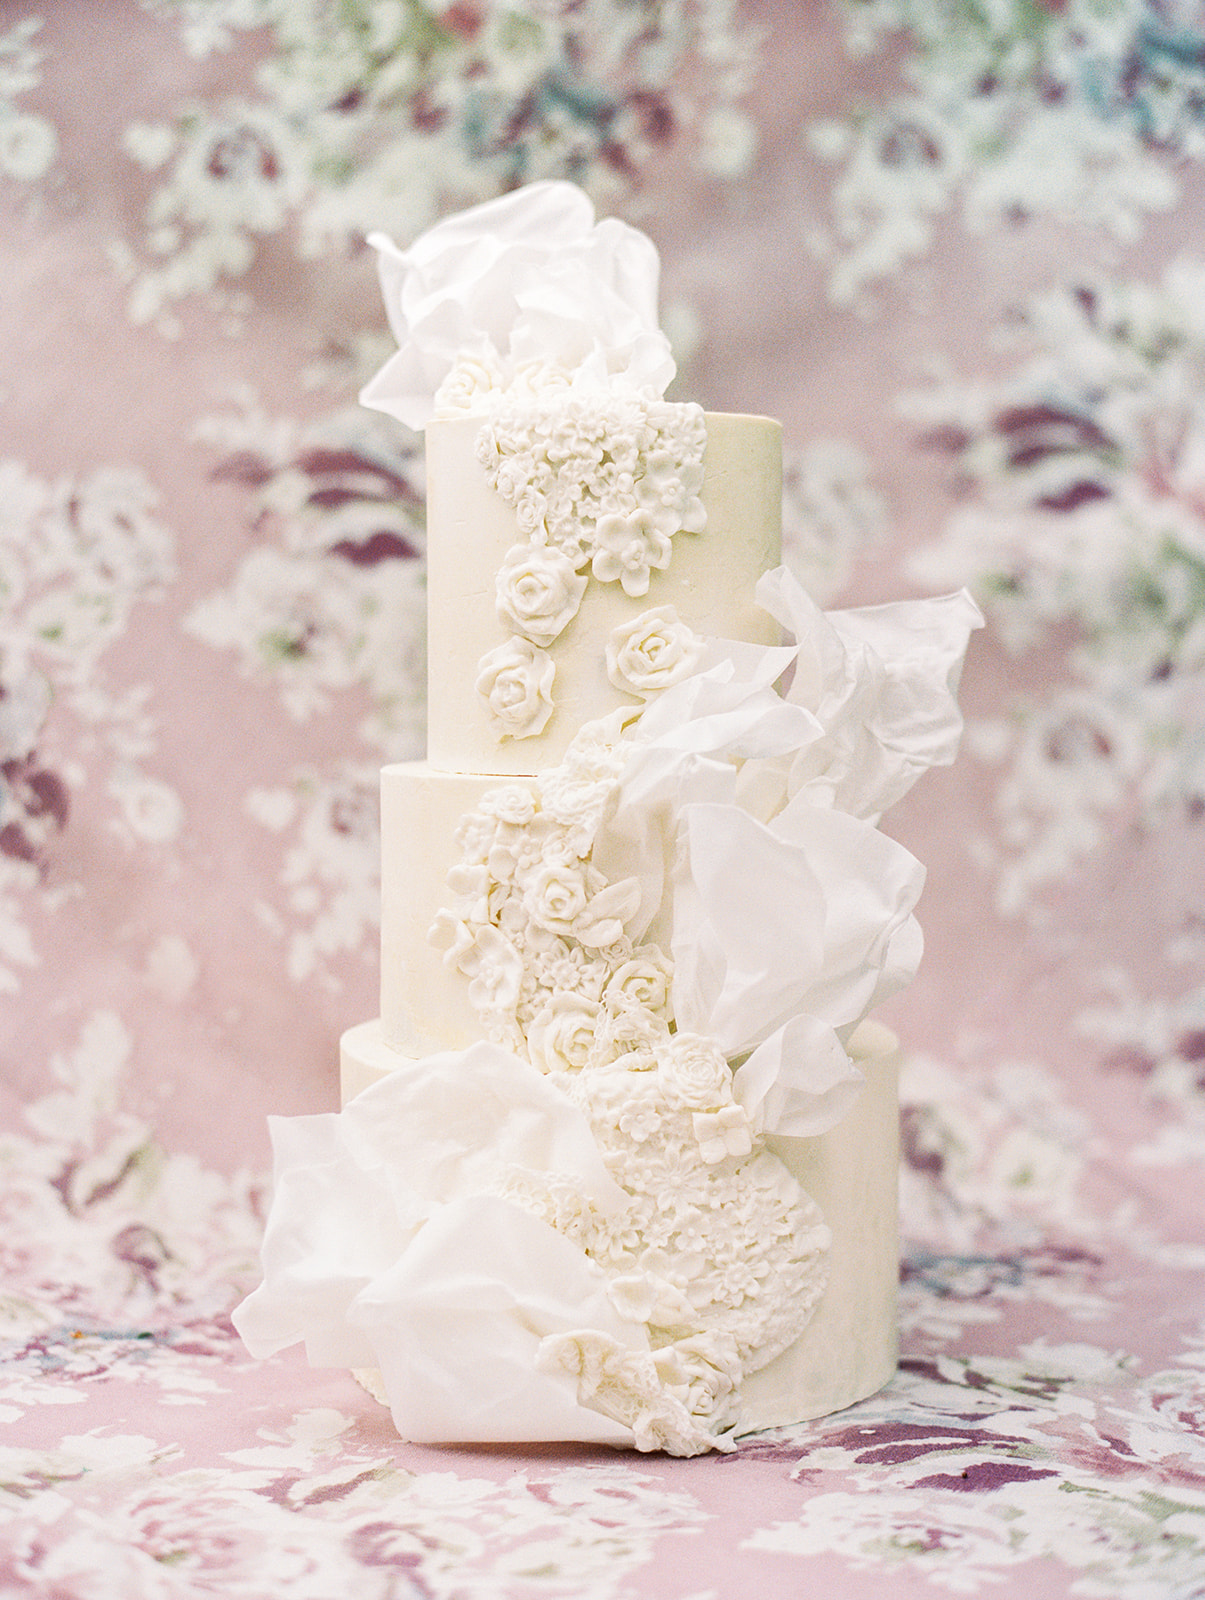 White floral wedding cake design | Butterfly Cakery | Alexa Kay Events